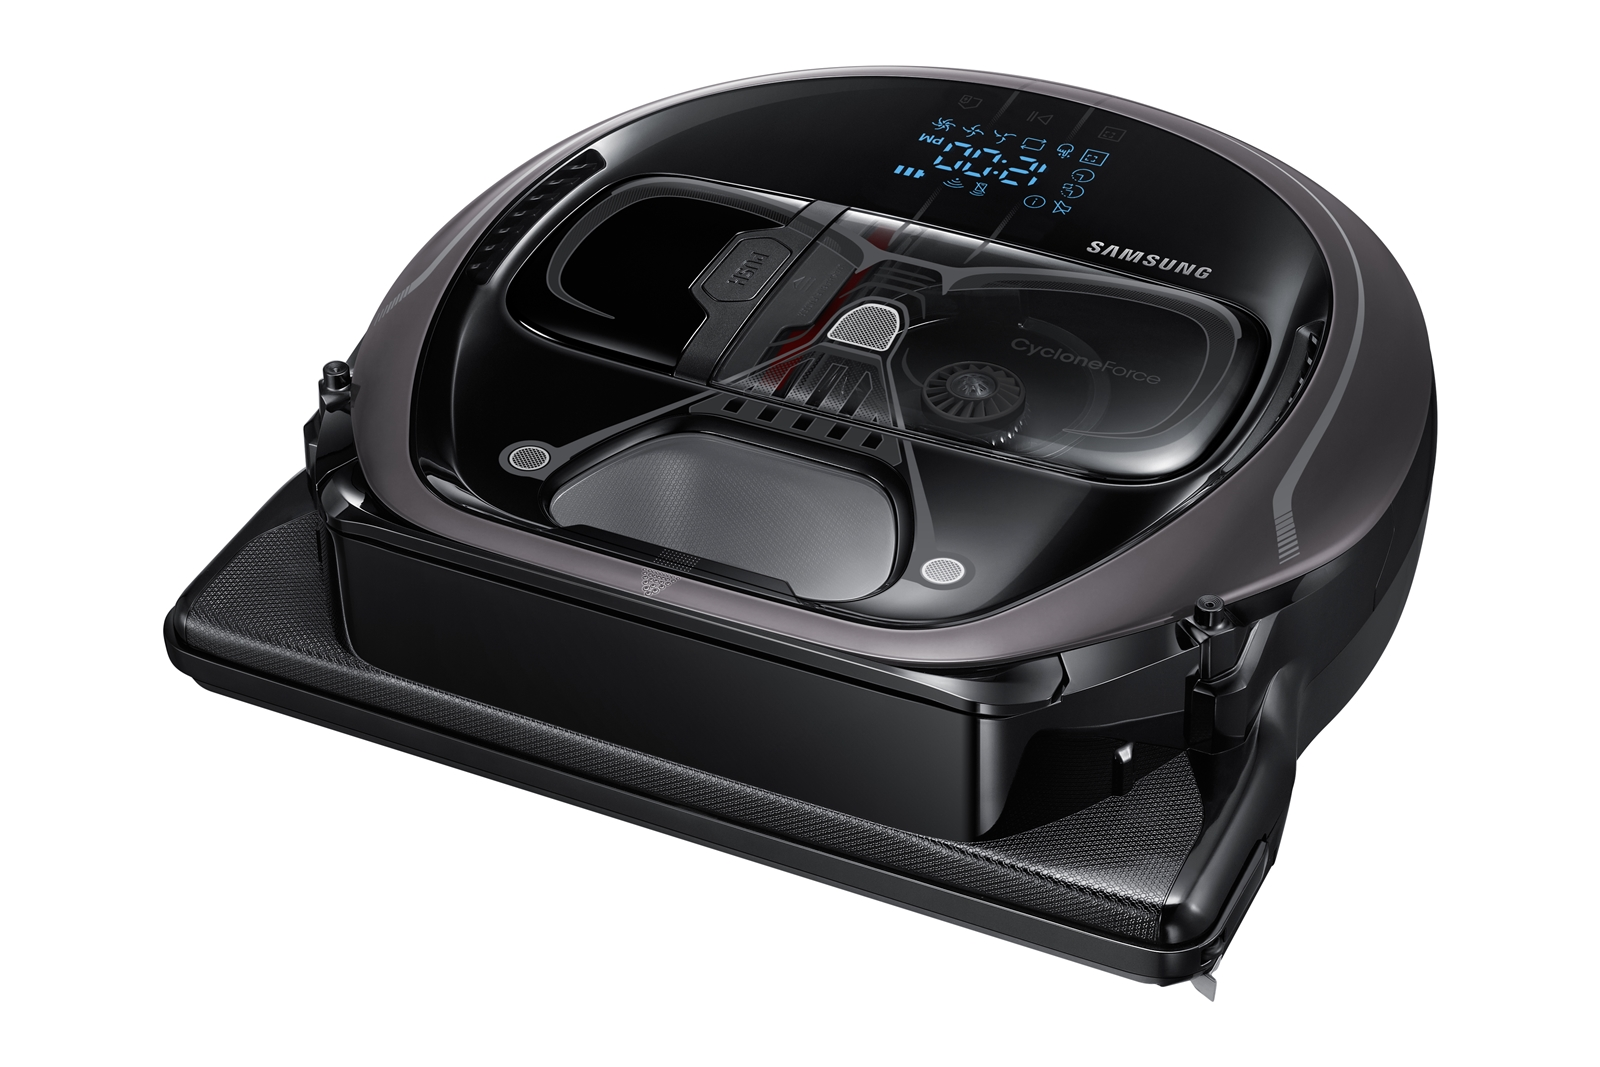 Samsung Releases Star Wars Edition Styled Robot Vacuum Cleaner